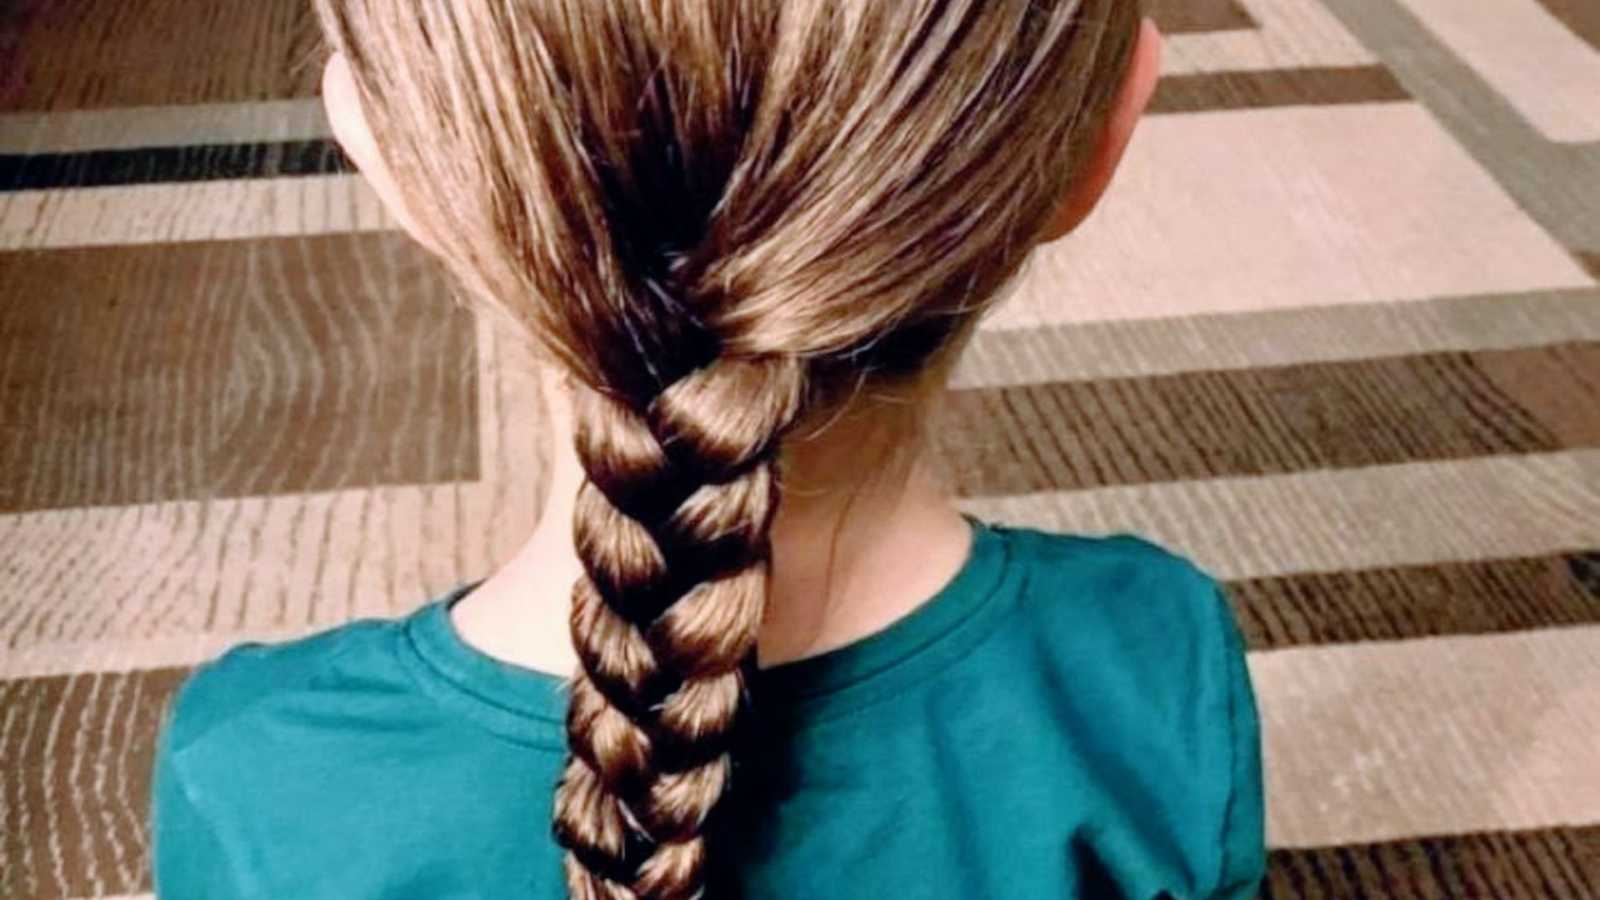 Little girl sits on the floor and shows off her freshly braided hair